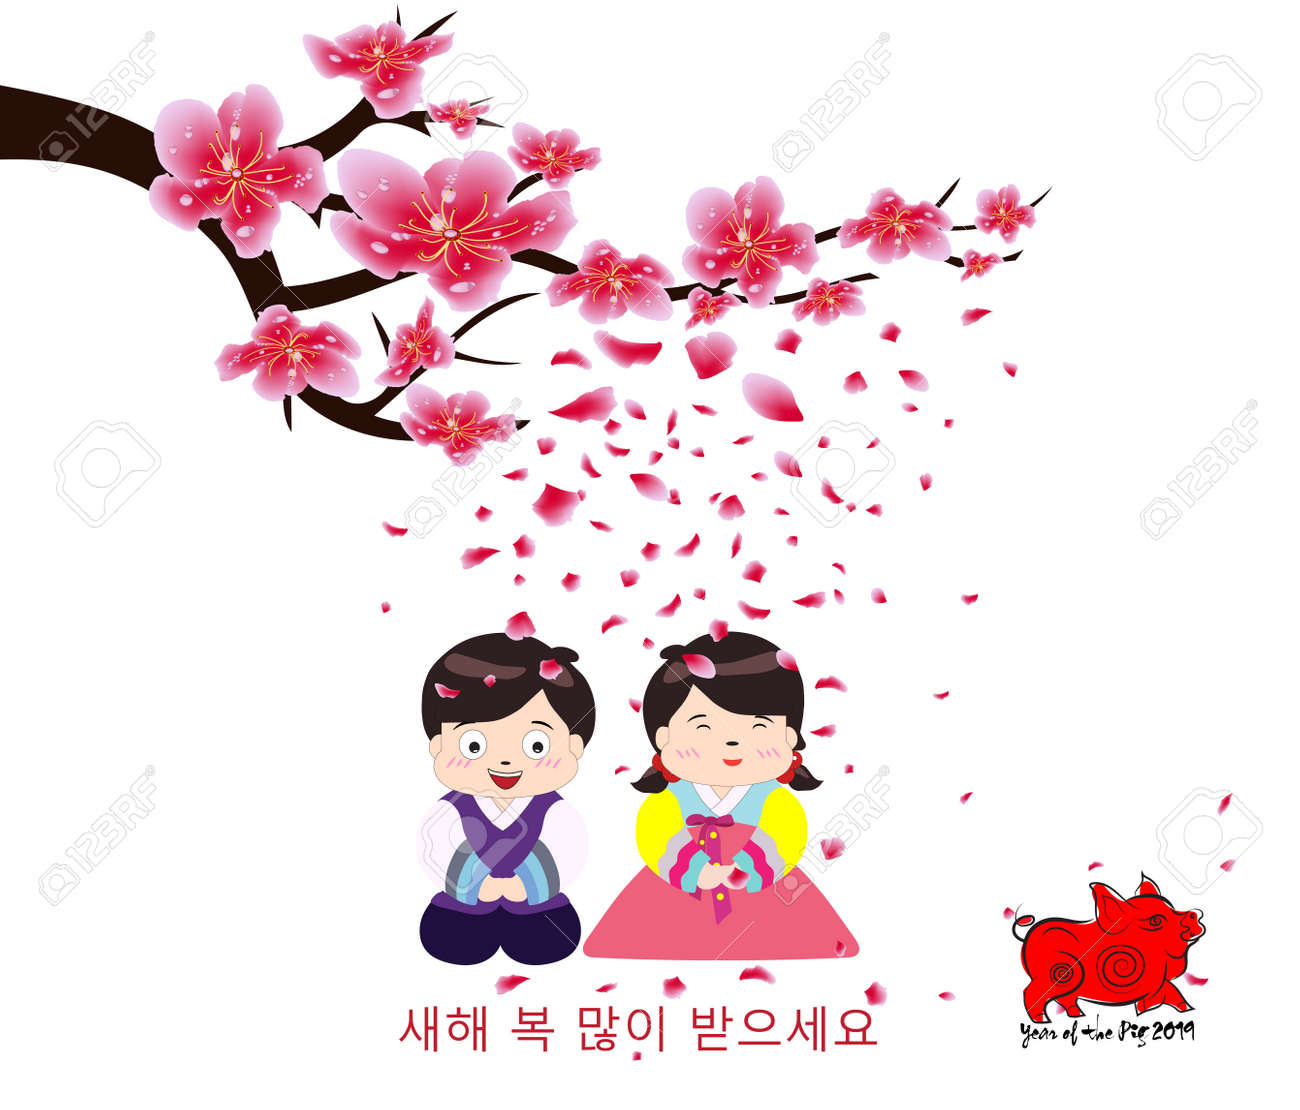 Koreans New Year Greeting Card Design Template Royalty Free